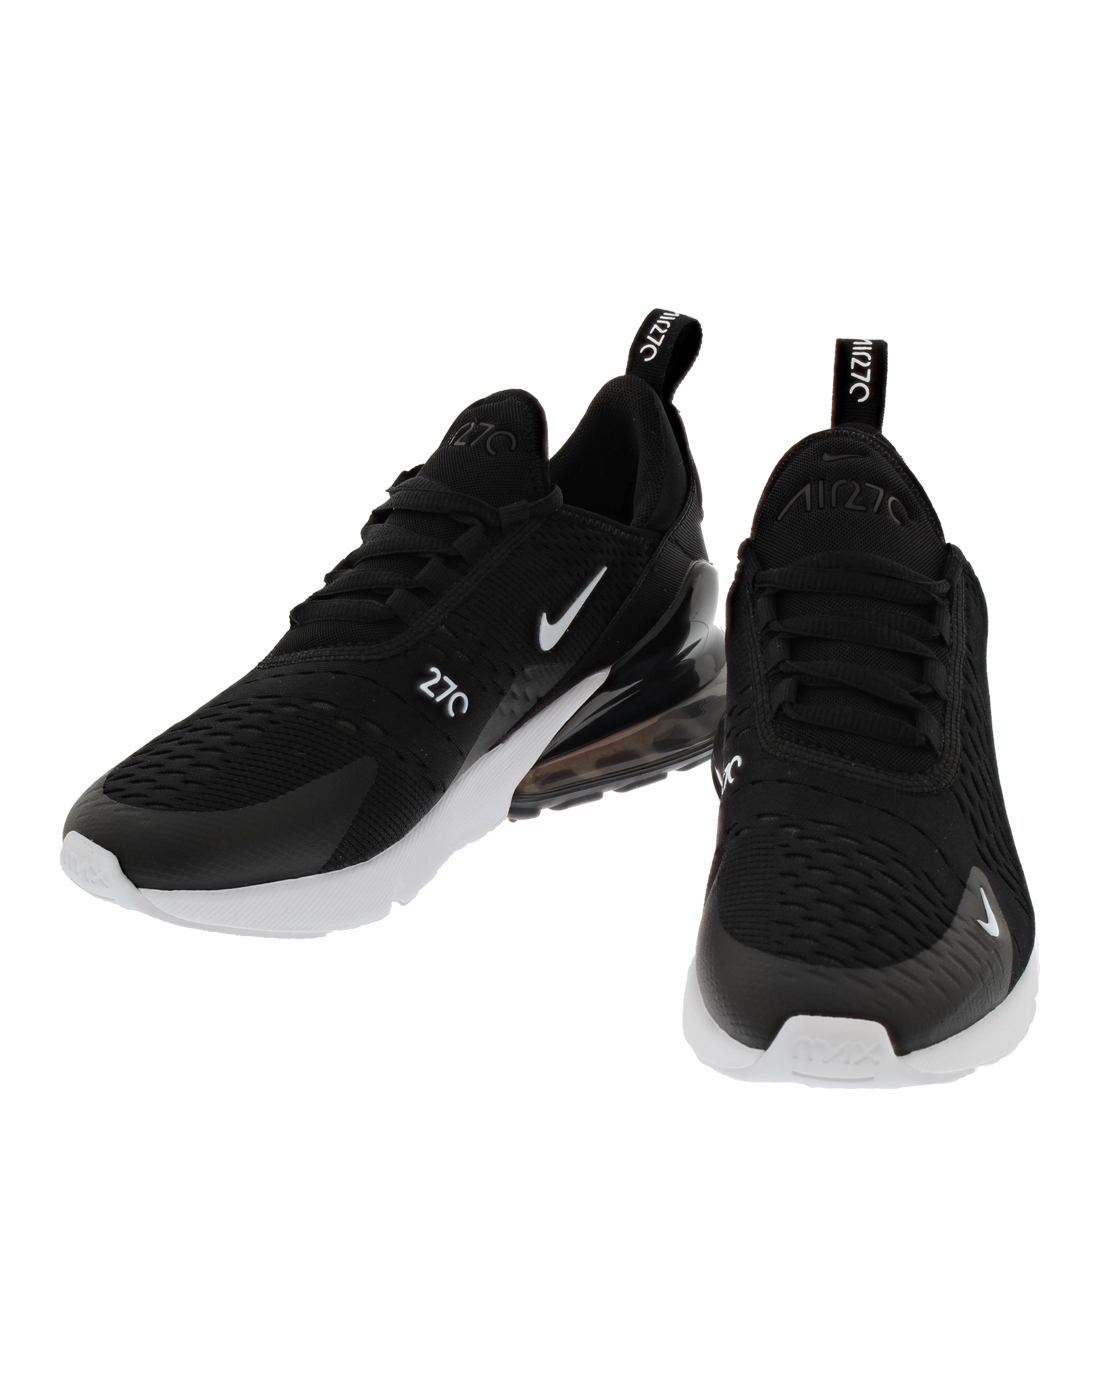 1184bfbcf2b Older Kids Air Max 270 · Older Kids Air Max 270 ...